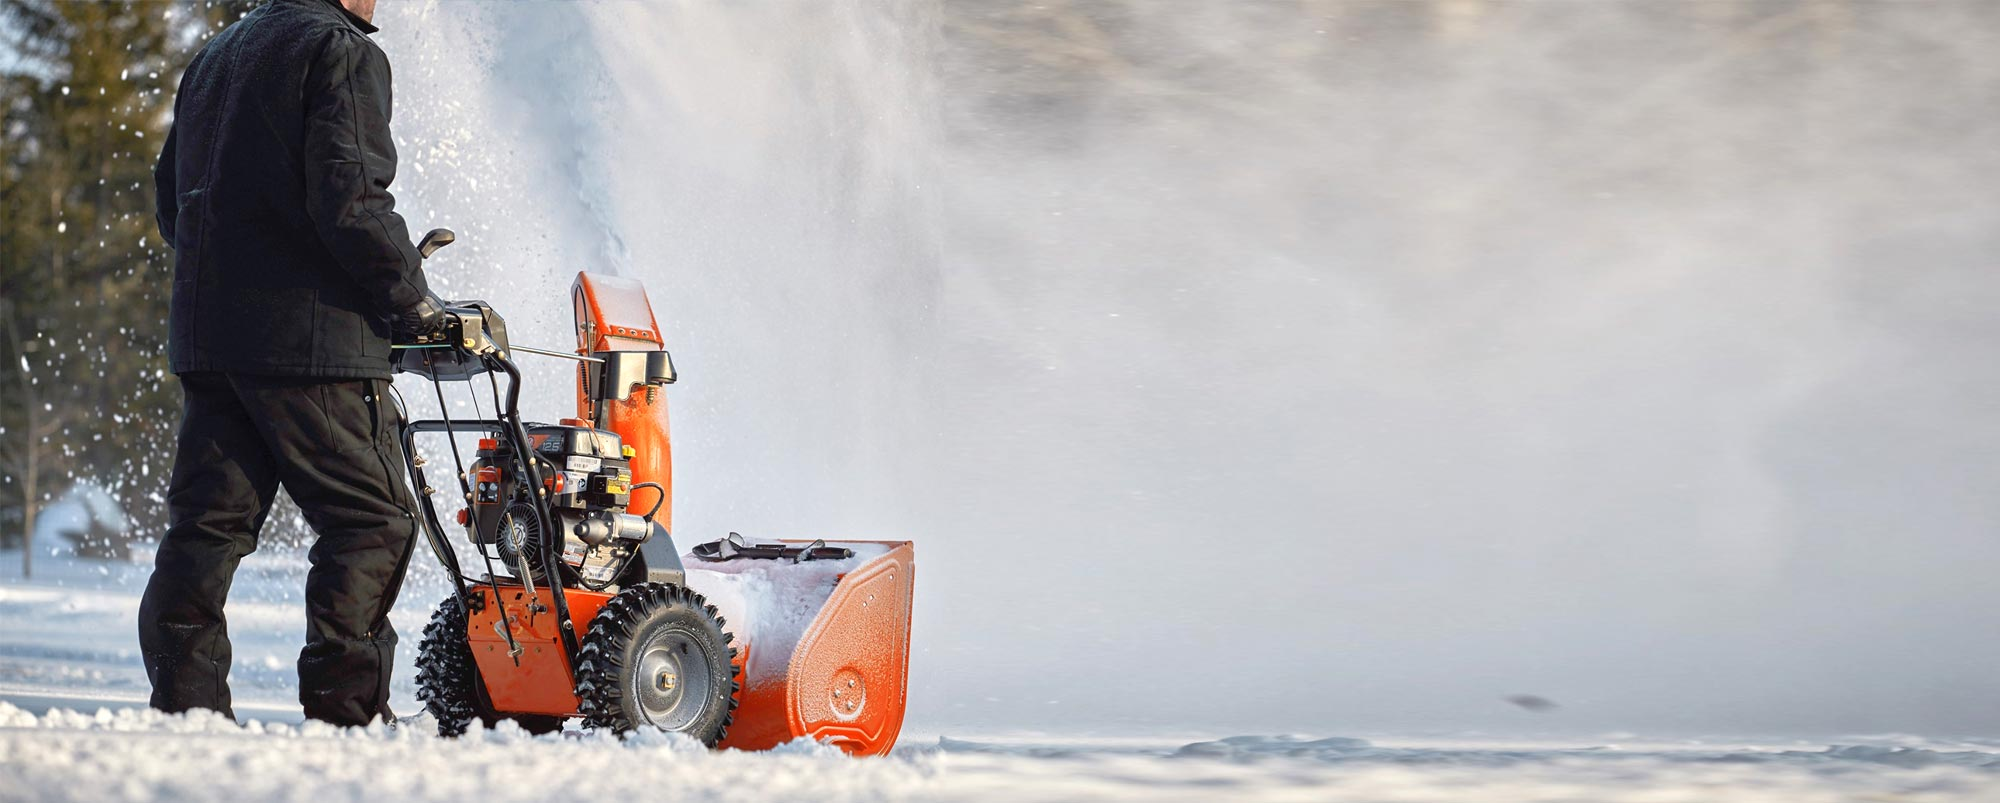 Man using an orange Ariens Snowblower to move snow in the winter